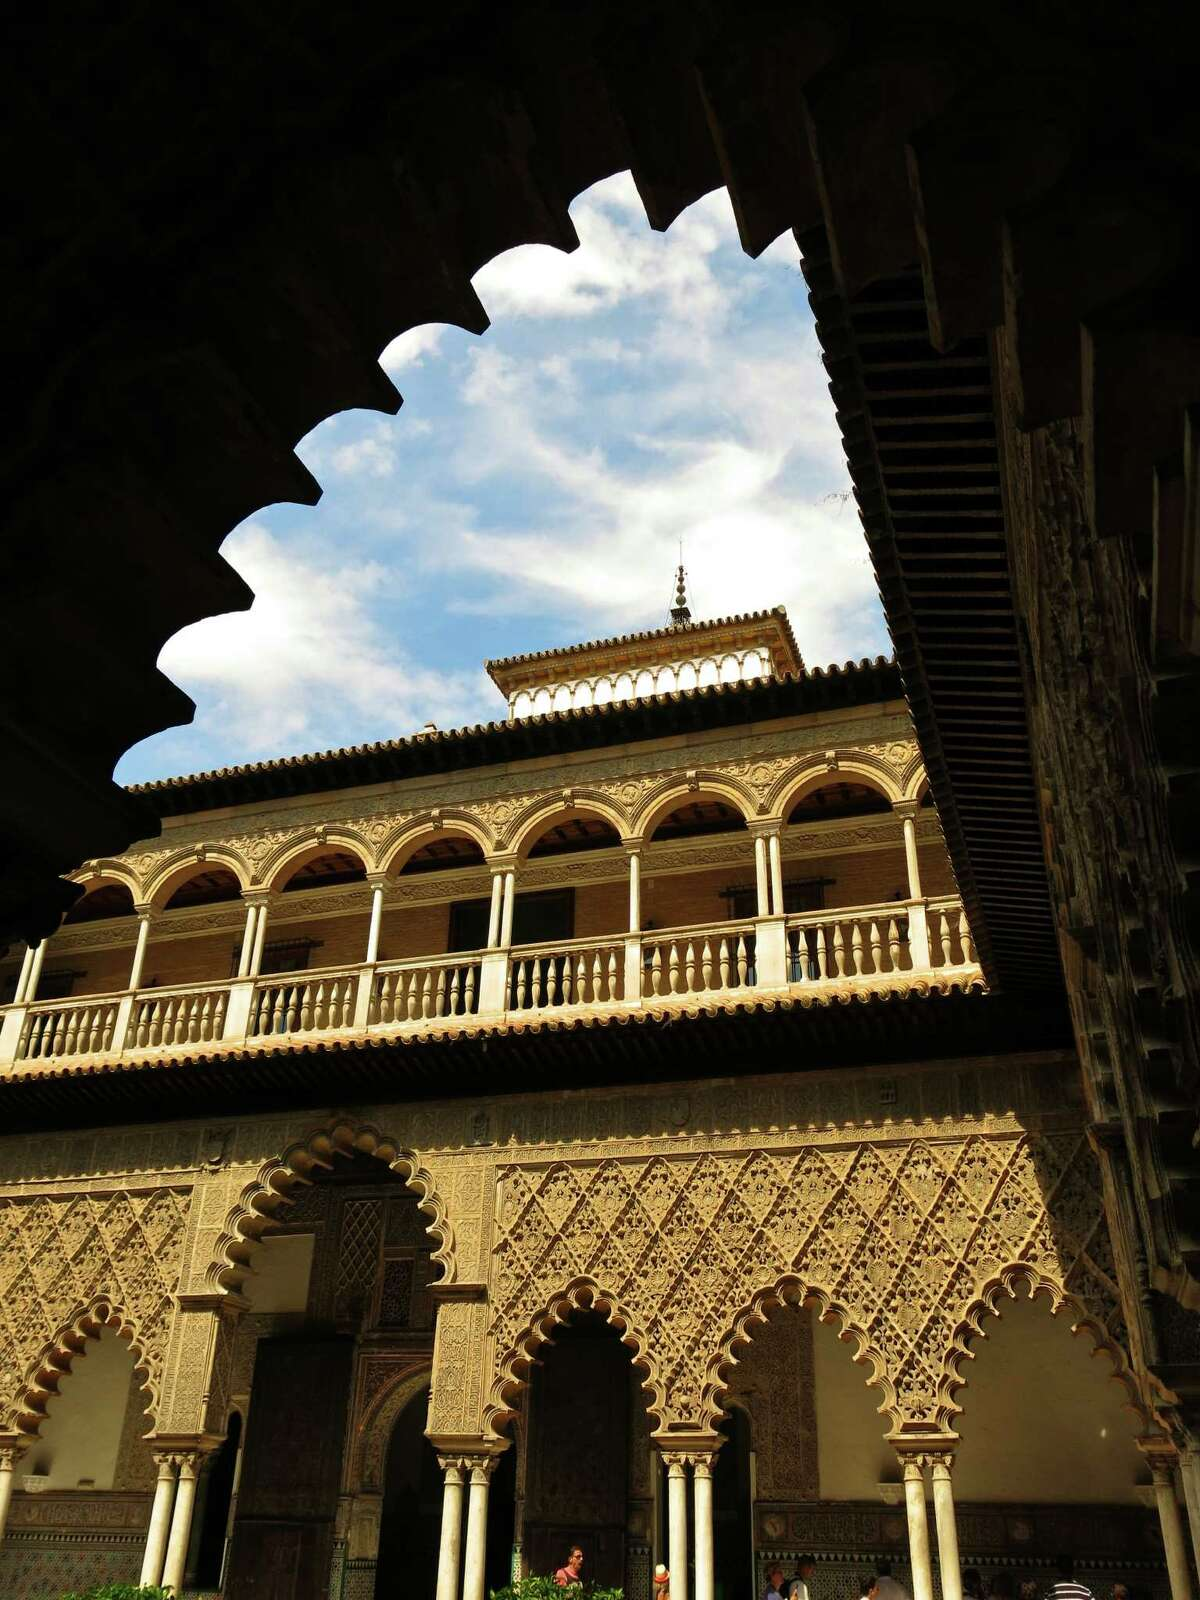 Seville's Real Alcazar is an intricately designed architectural masterpiece.